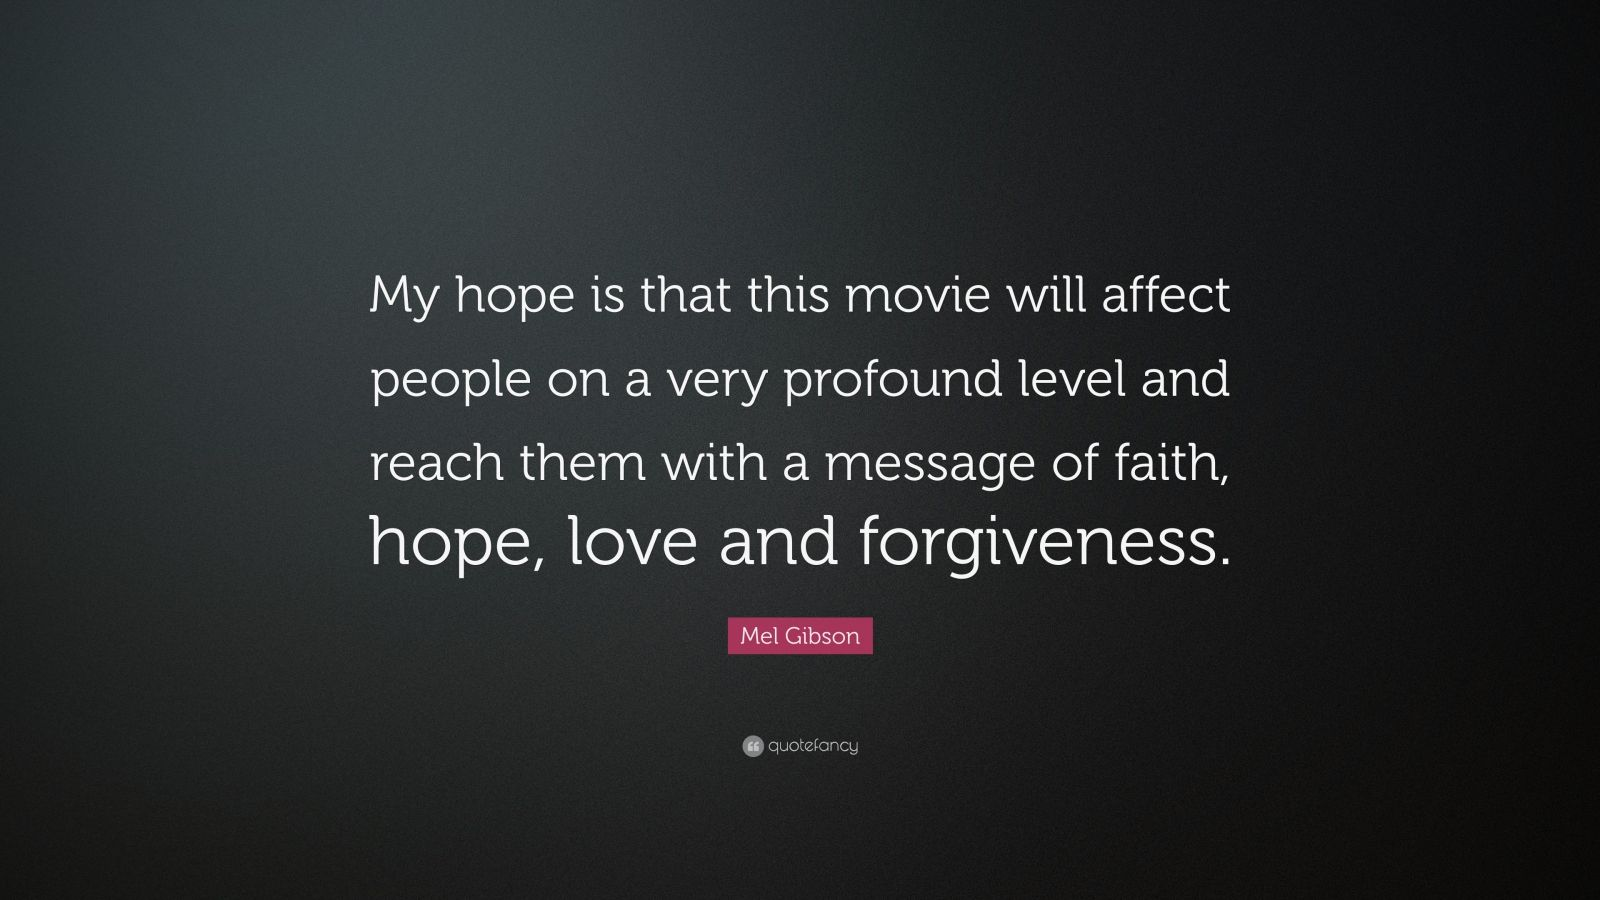 """Mel Gibson Quote: """"My hope is that this movie will affect people on a very profound level and reach them with a message of faith, hope, love and forgiveness."""""""